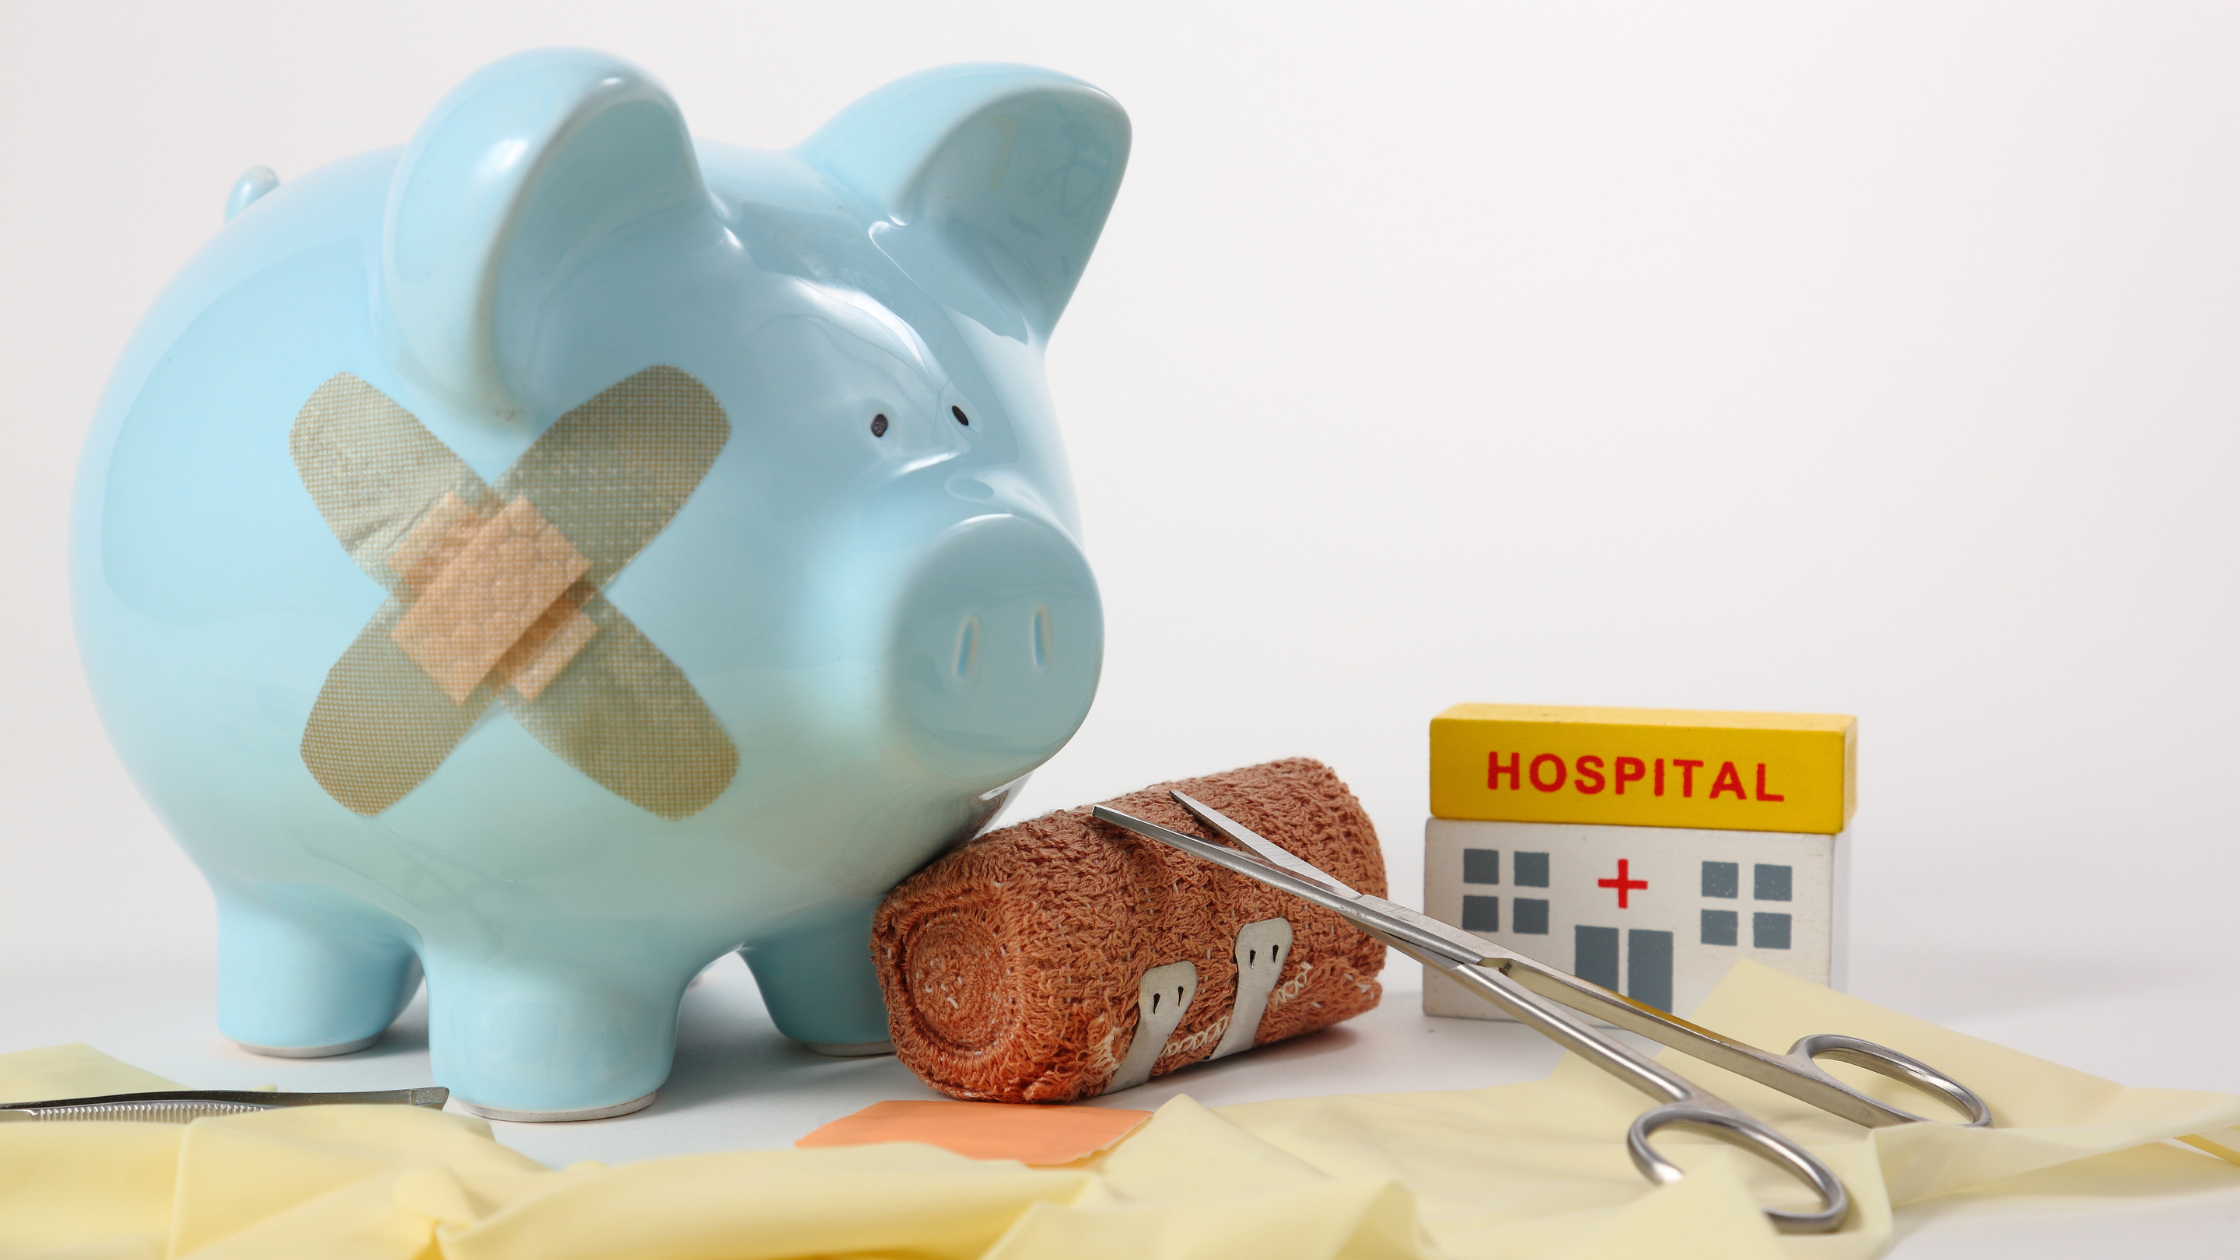 Blue piggy bank with band-aids on its' side. A roll of gauze, surgical scissors, and a small block shaped like a hospital are next to it.